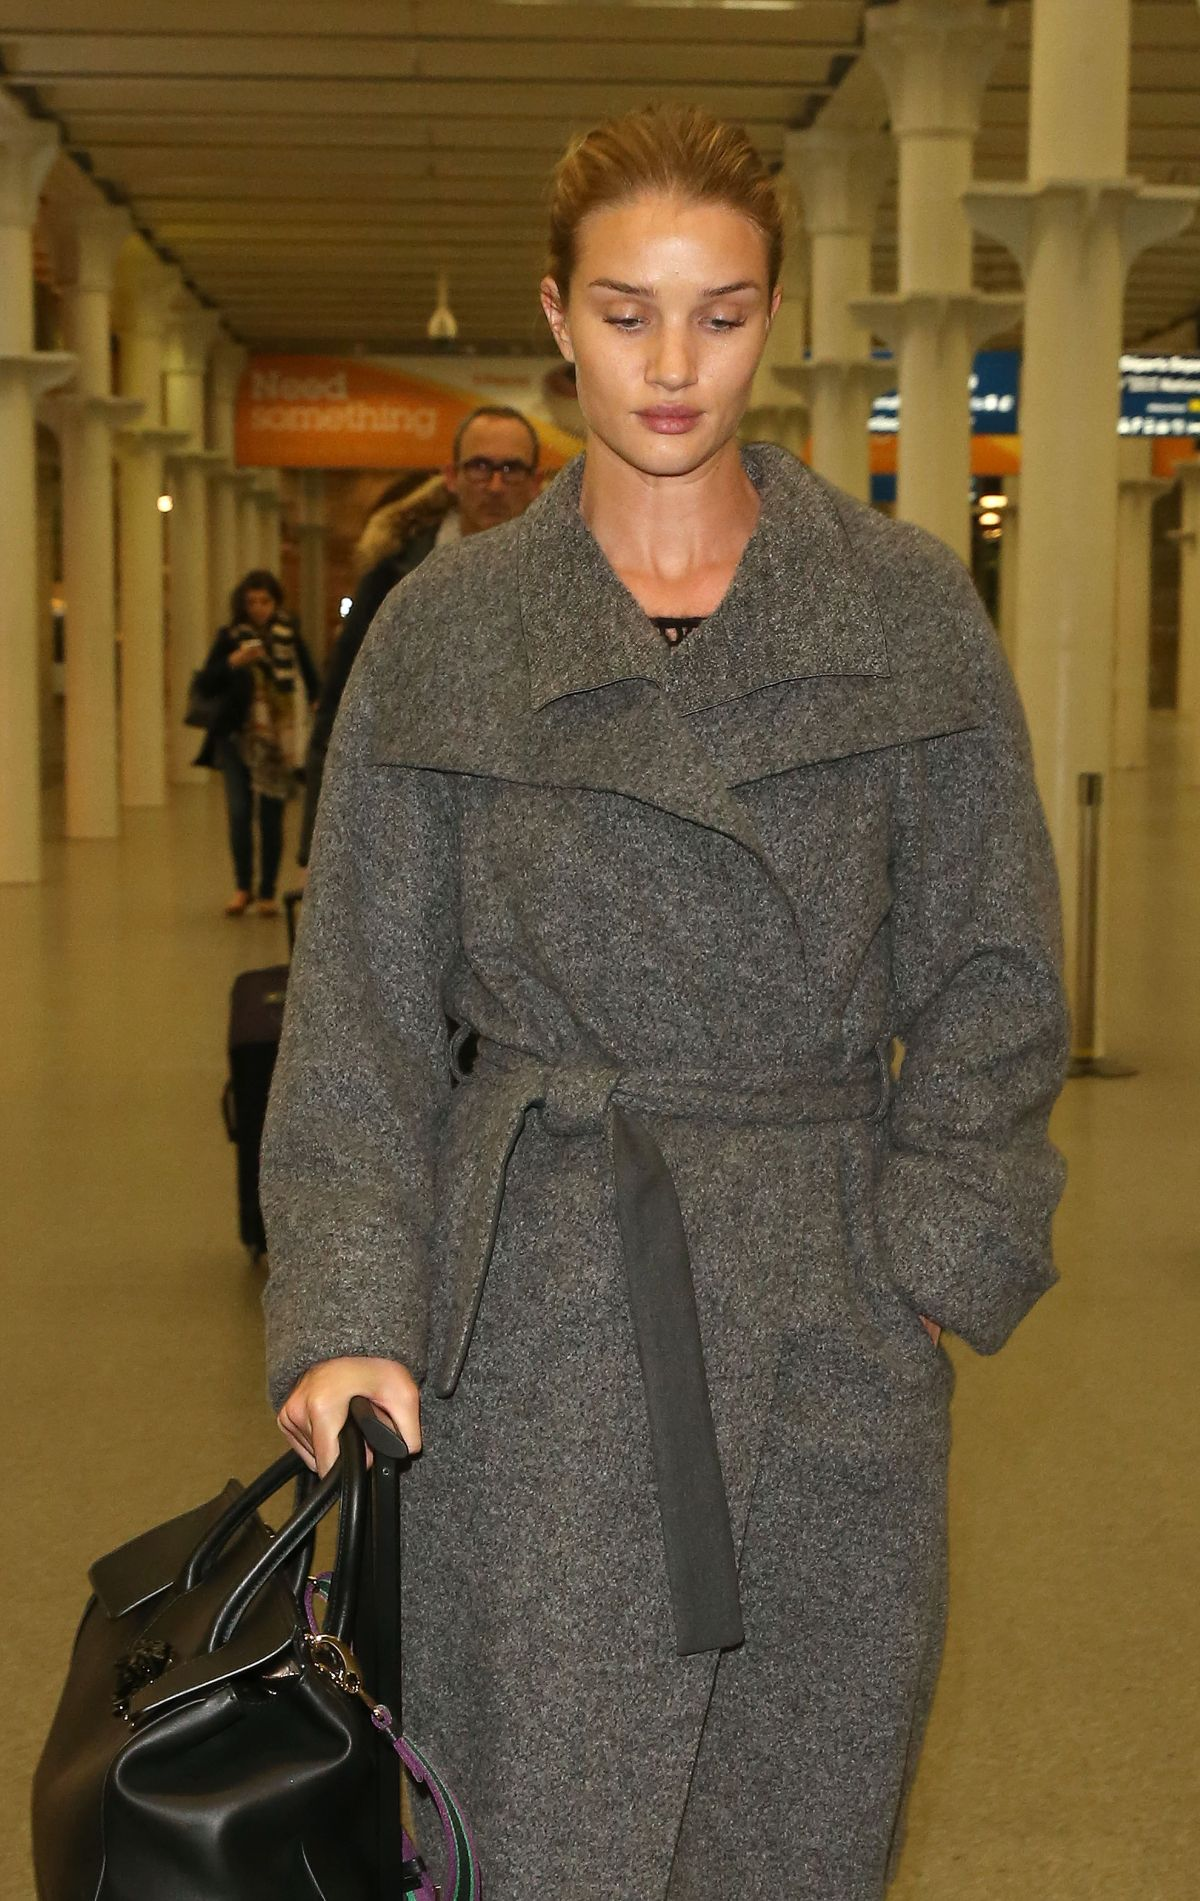 ROSIE HUNTINGTON-WHITELEY at St. Pancras Train Station in London 01/28/2016